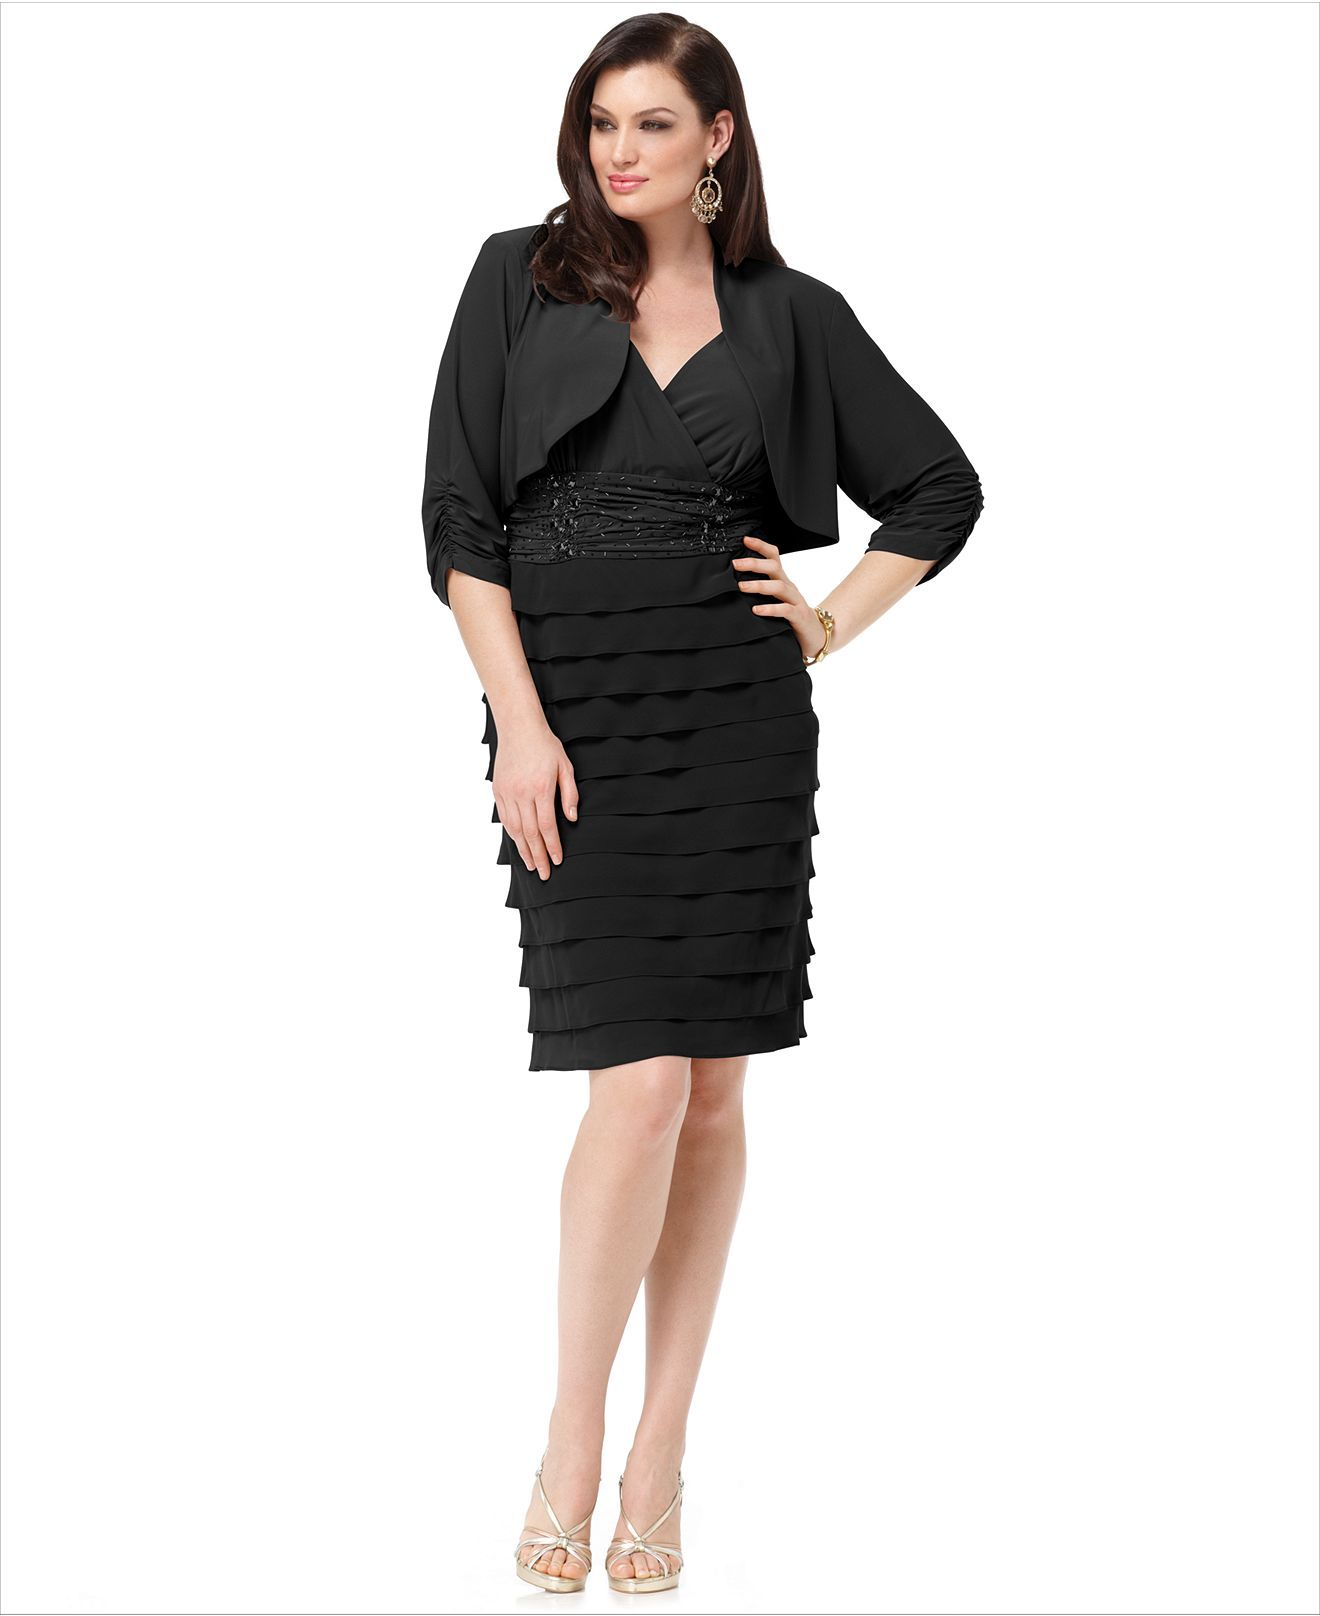 $88 http://www1.macys.com/shop/product/sl-fashions-plus-size-dress ...